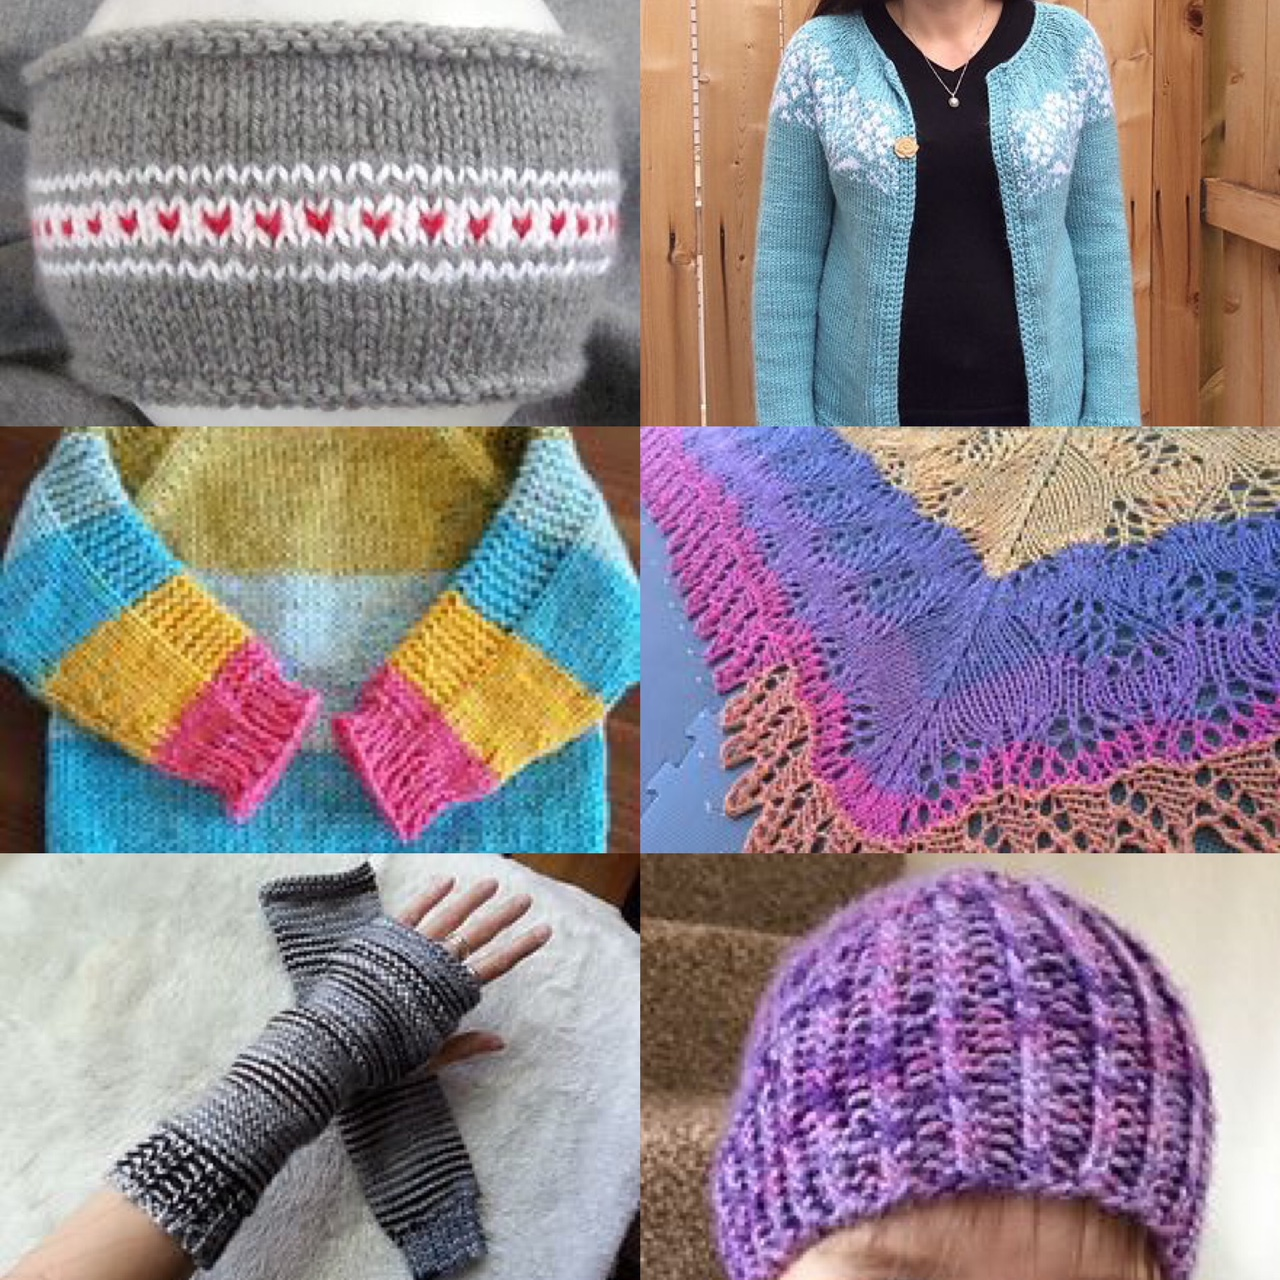 SOURCES:  Headband ,  Adult Sweater ,  Childs Sweater ,  Shawl ,  Hand warmers ,  Hat